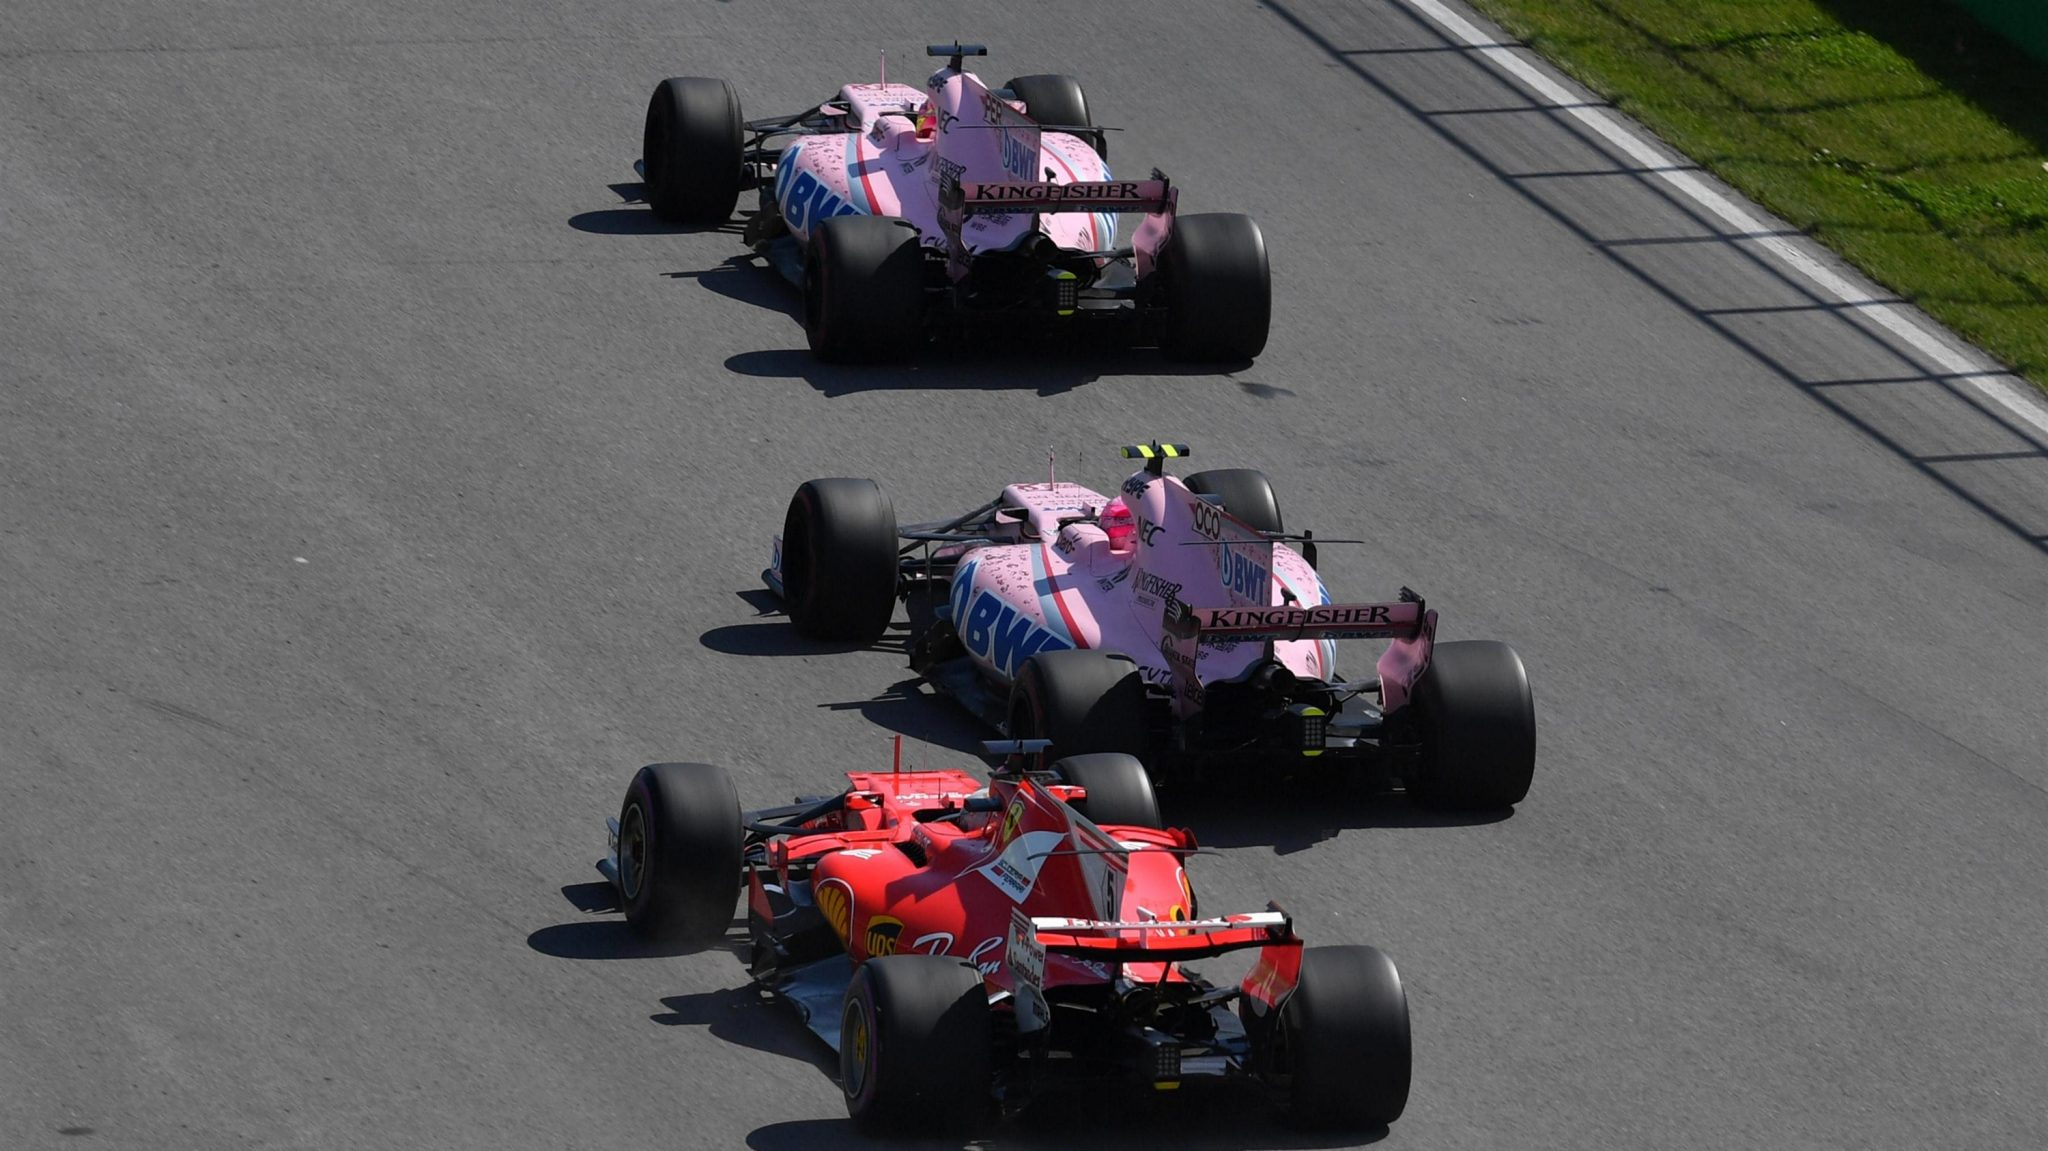 Vettel takes on both Force India cars at turn 1. Image courtesy: Sutton Images